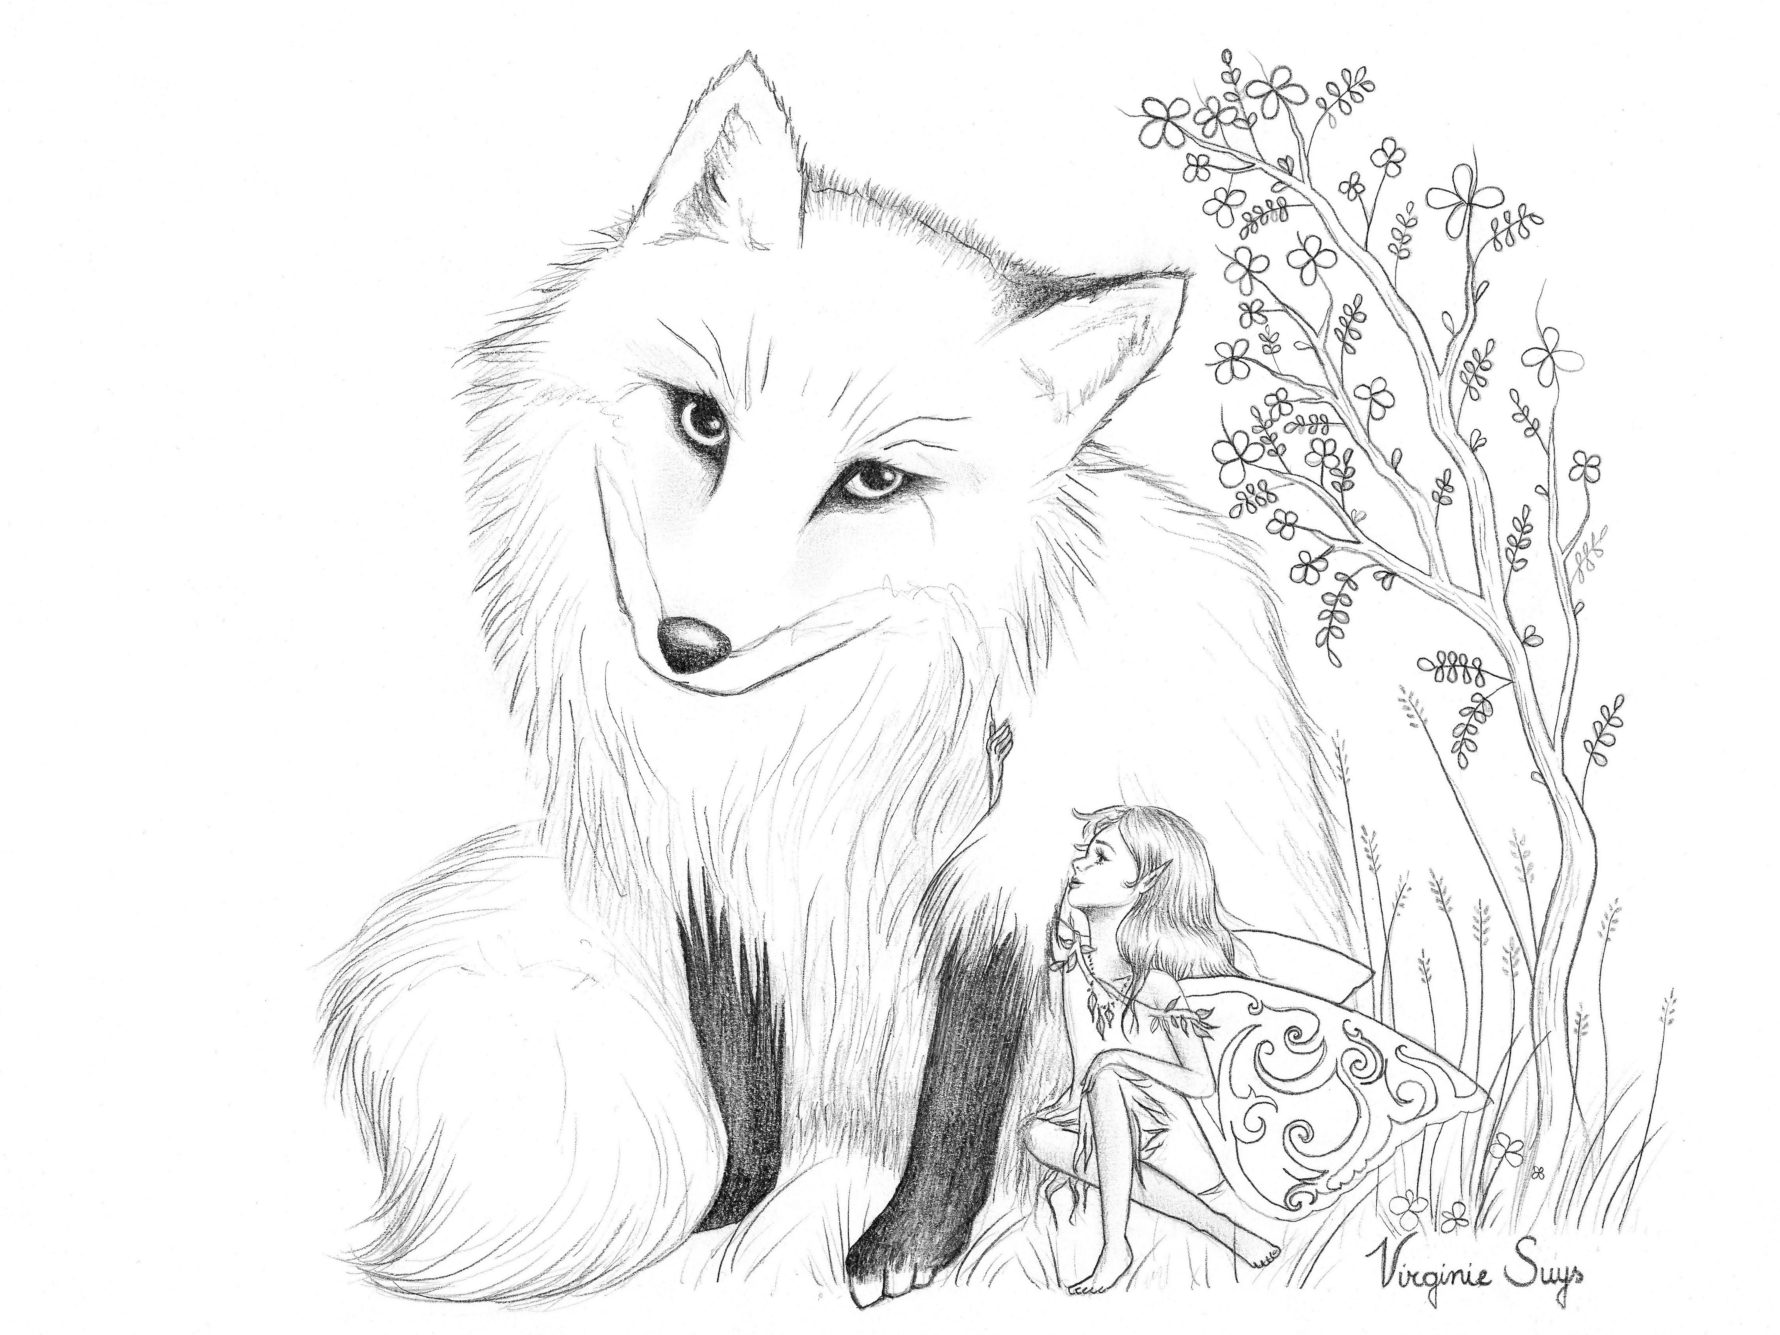 Virginie Suys Fox and fairy in black & white illustration